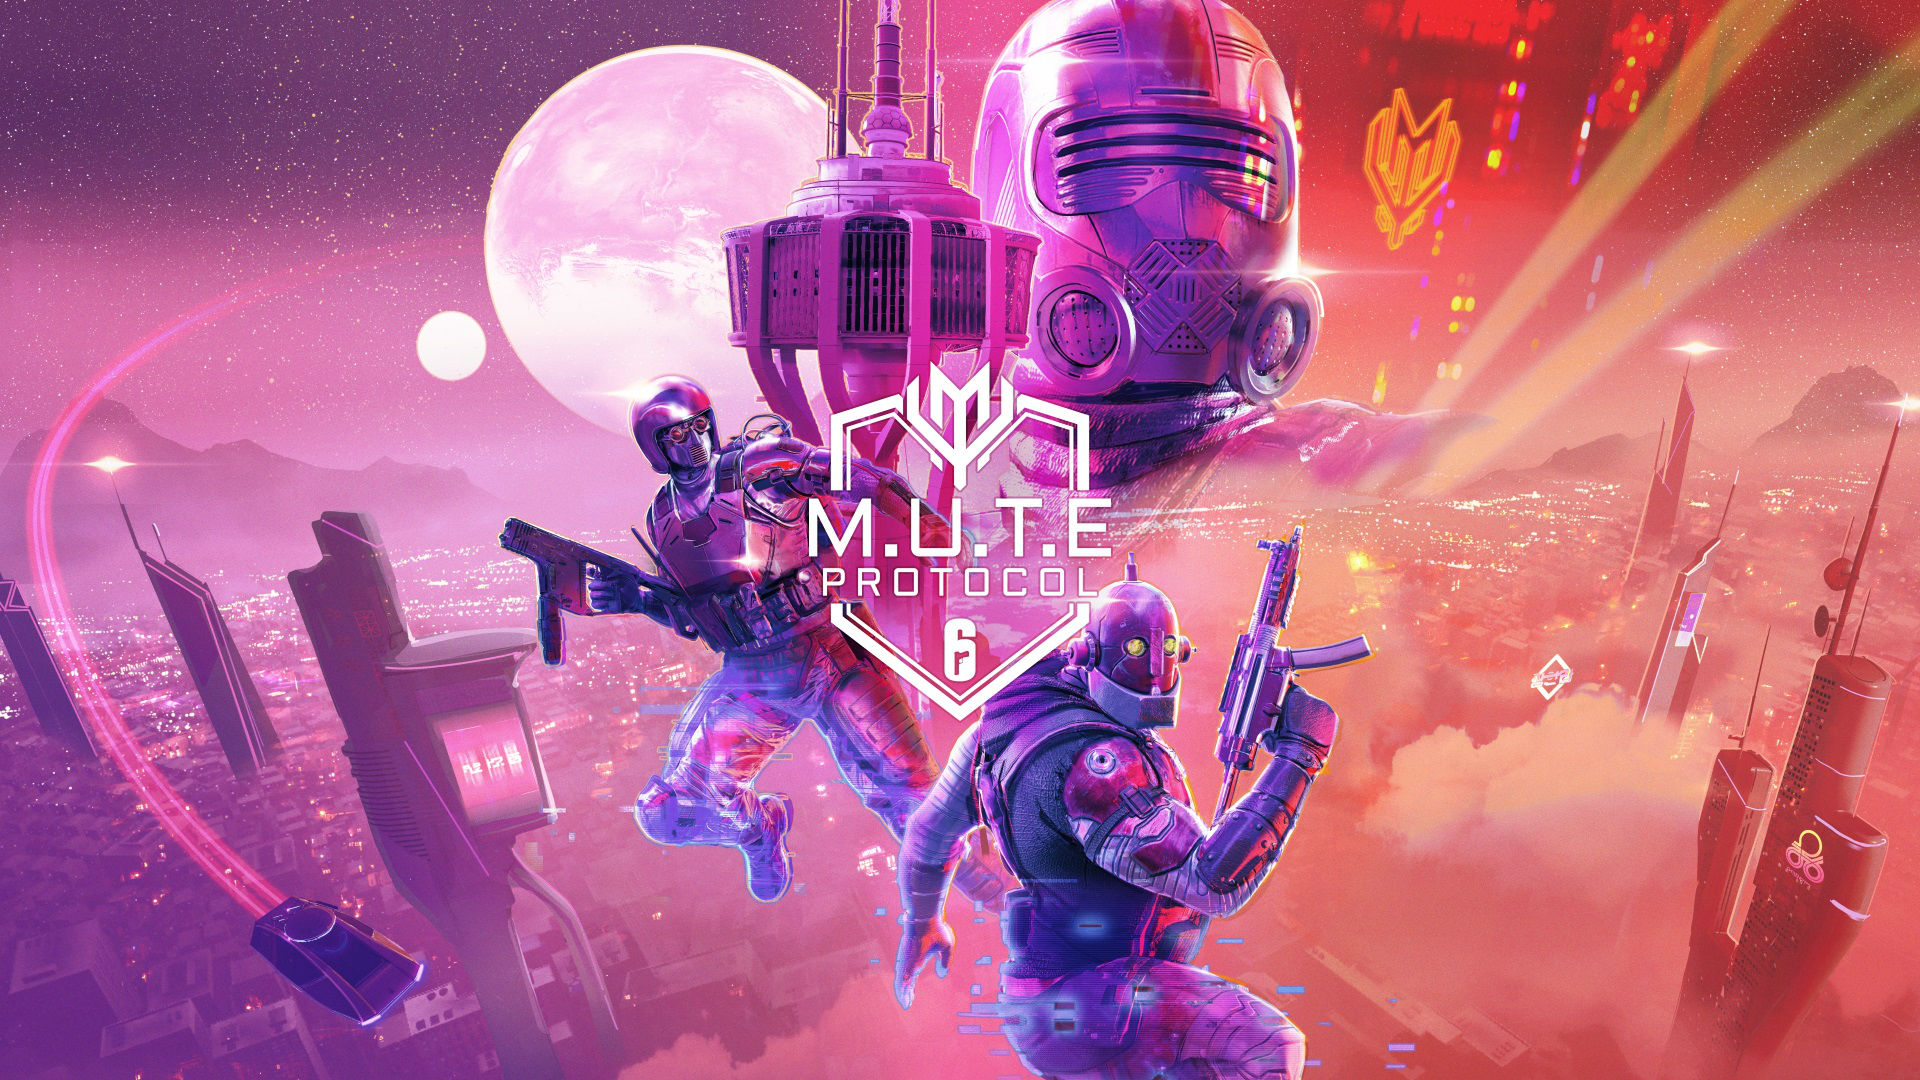 Rainbow Six Siege Mute Protocol invisible glitch: What to know about event, invisibility